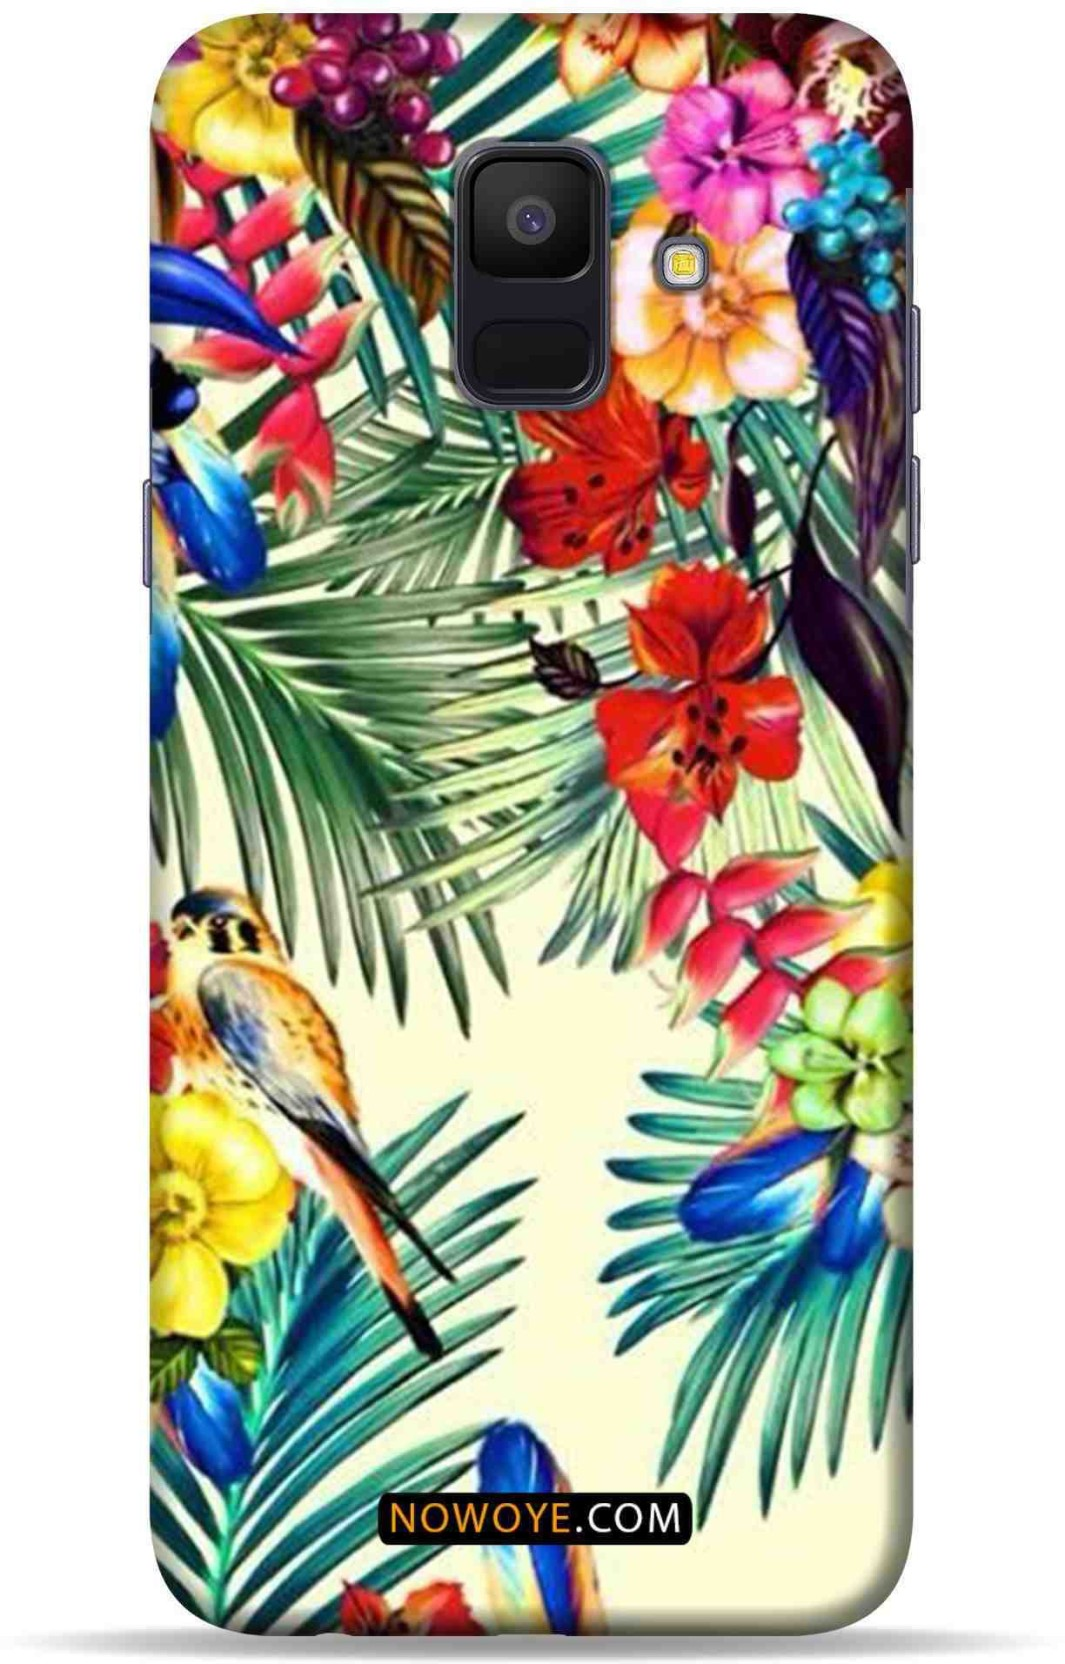 best loved 53112 477e4 Now Oye Back Cover for Now Oye Samsung Galaxy A6 - THE AMAZON FOREST ...